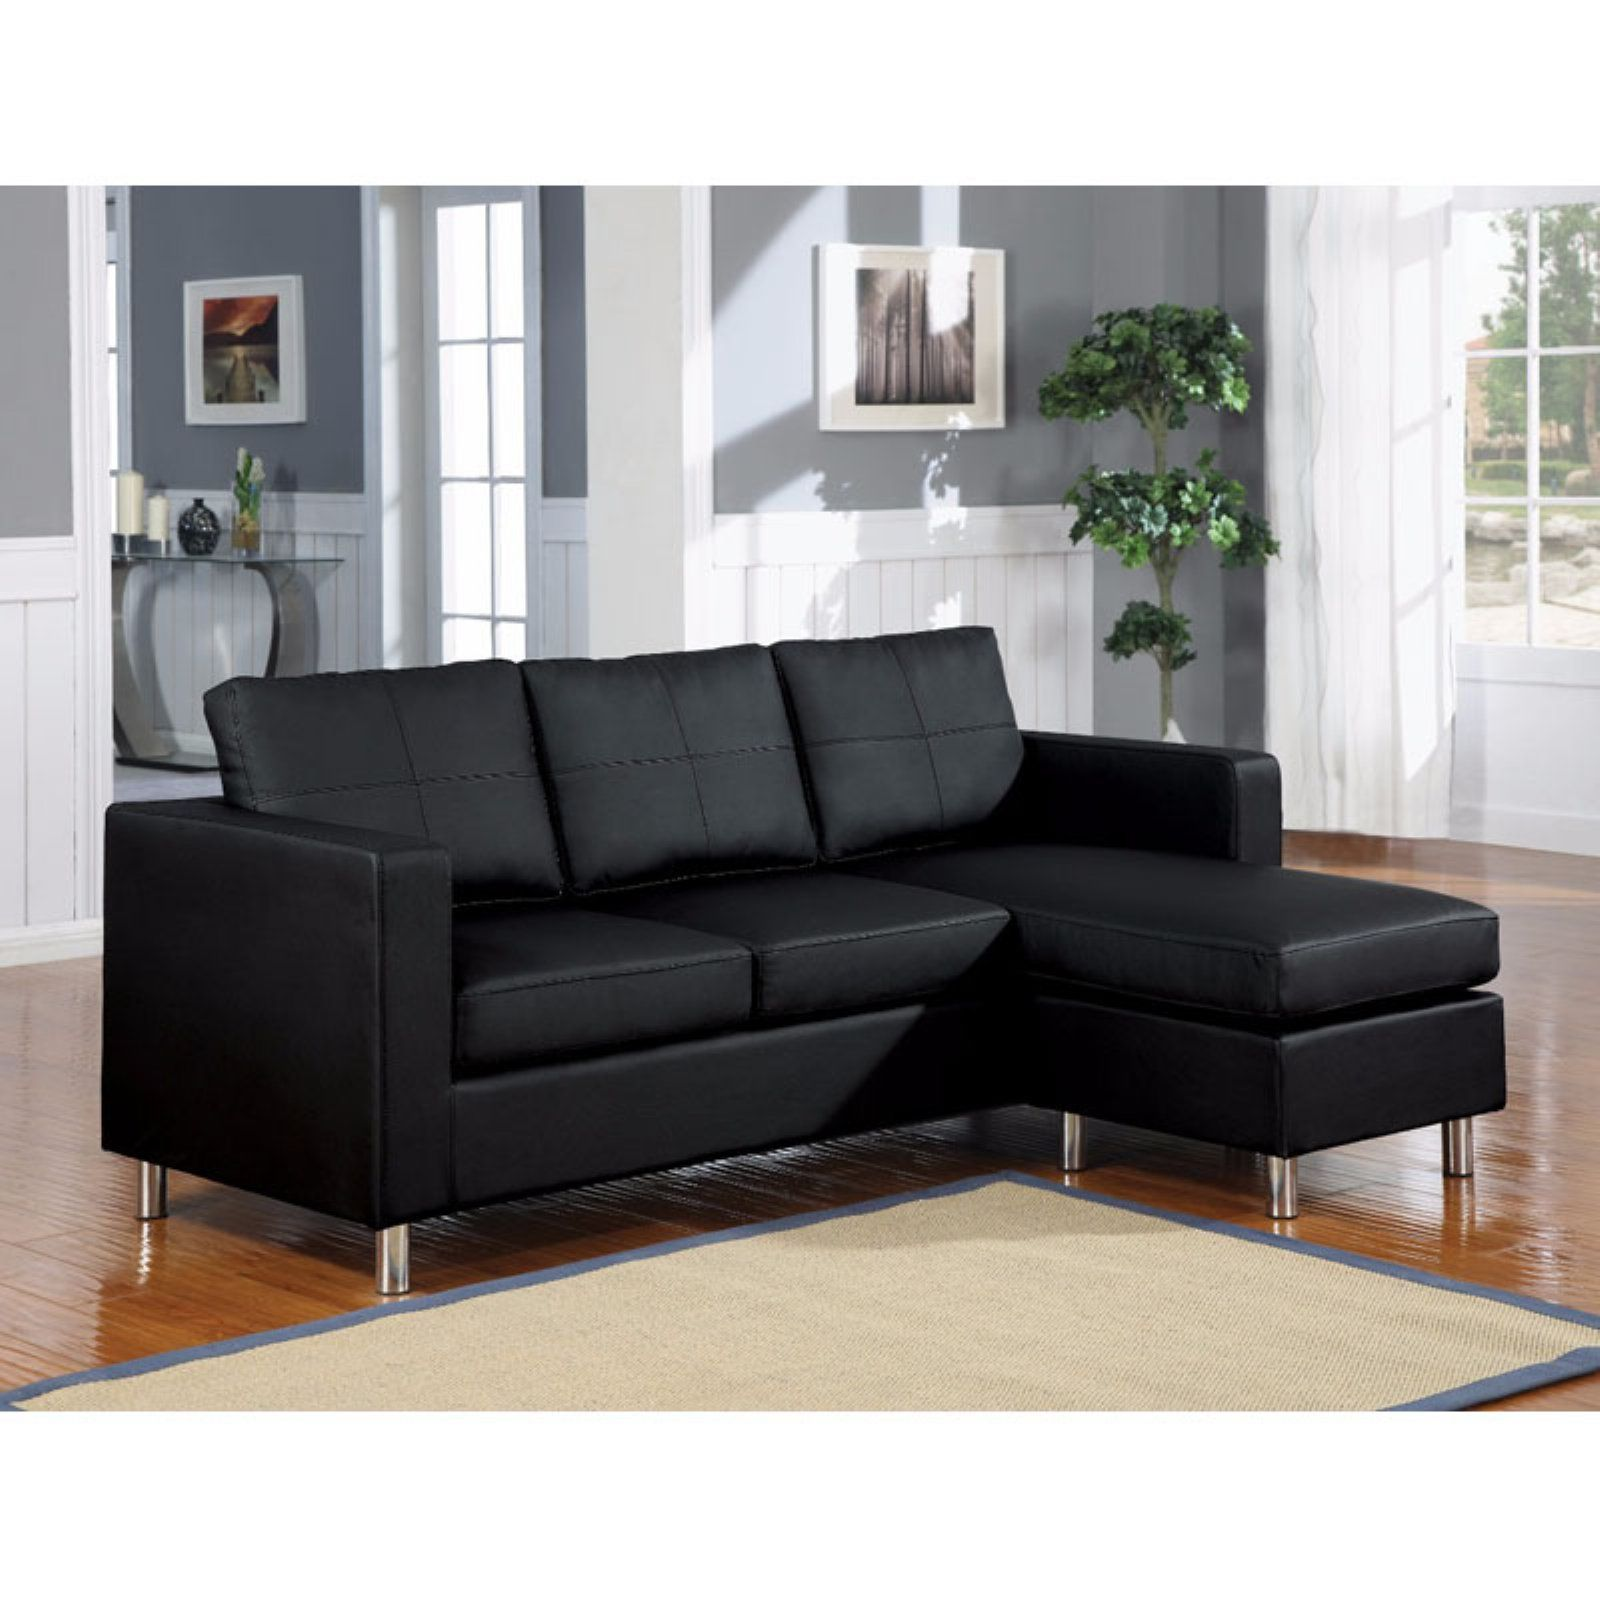 Benzara Chic Convertible Sectional Sofa Black | Products in ...